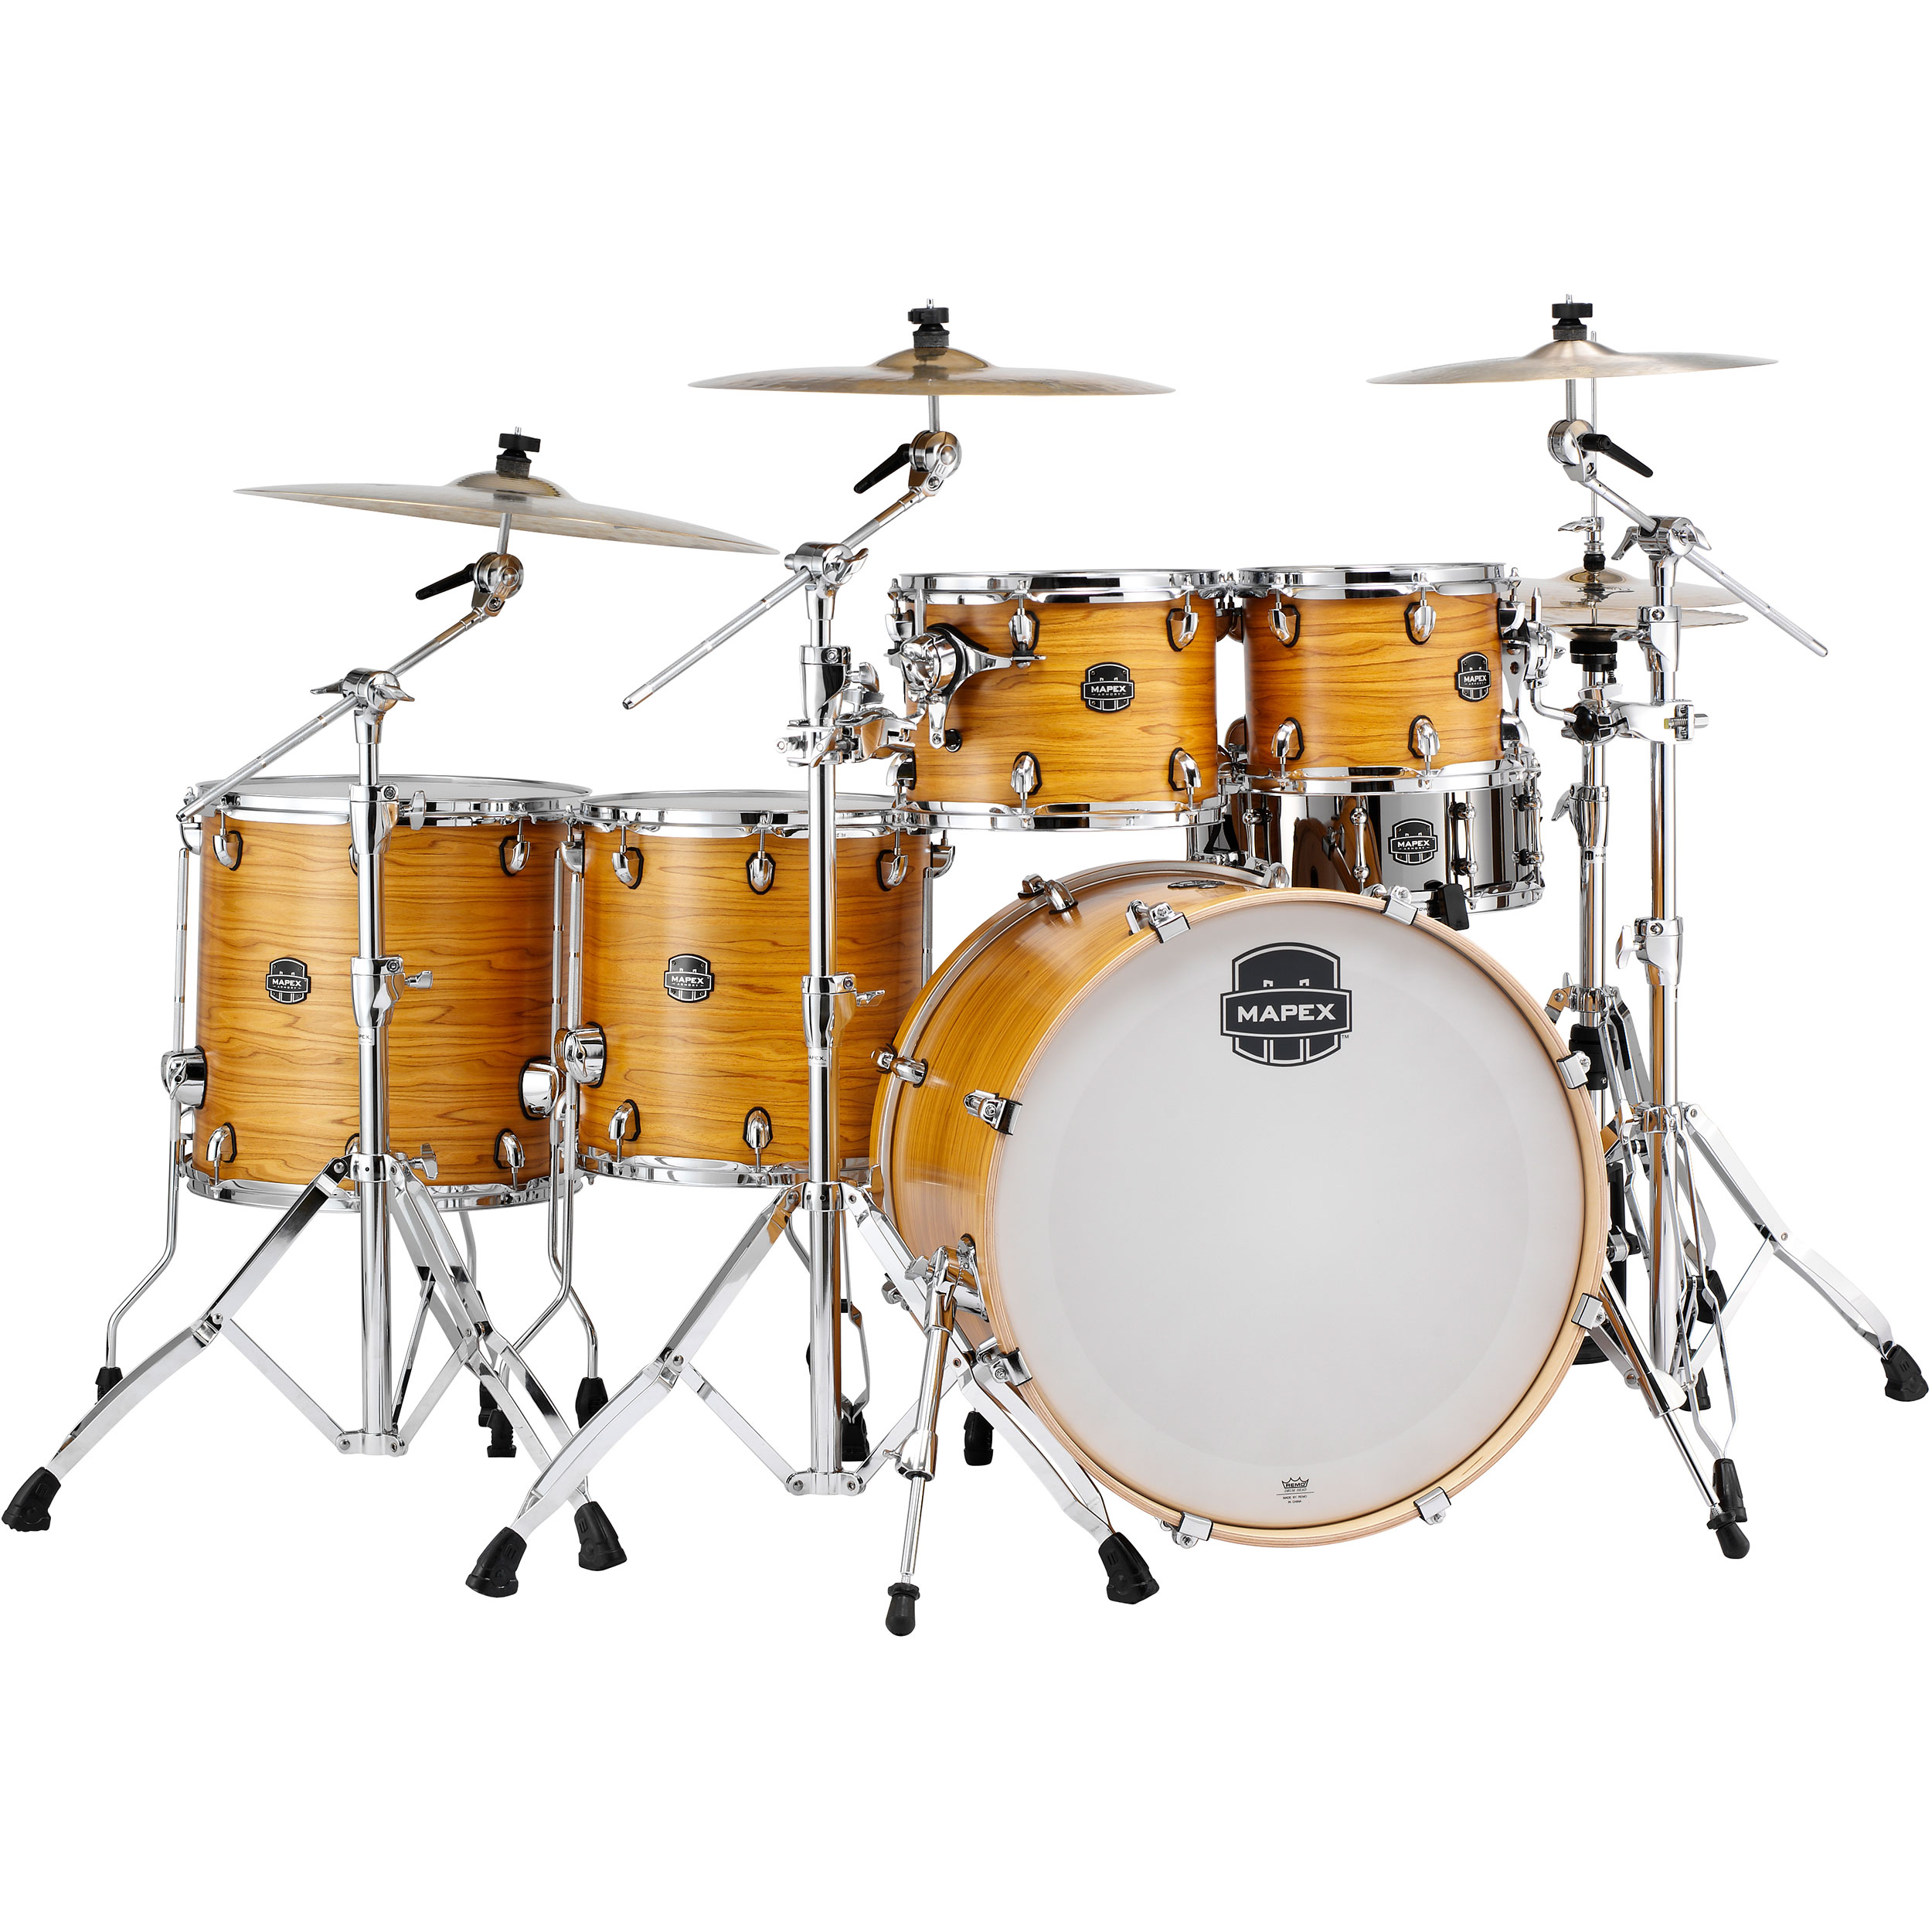 6-piece Acoustic Drum Sets | Sweetwater